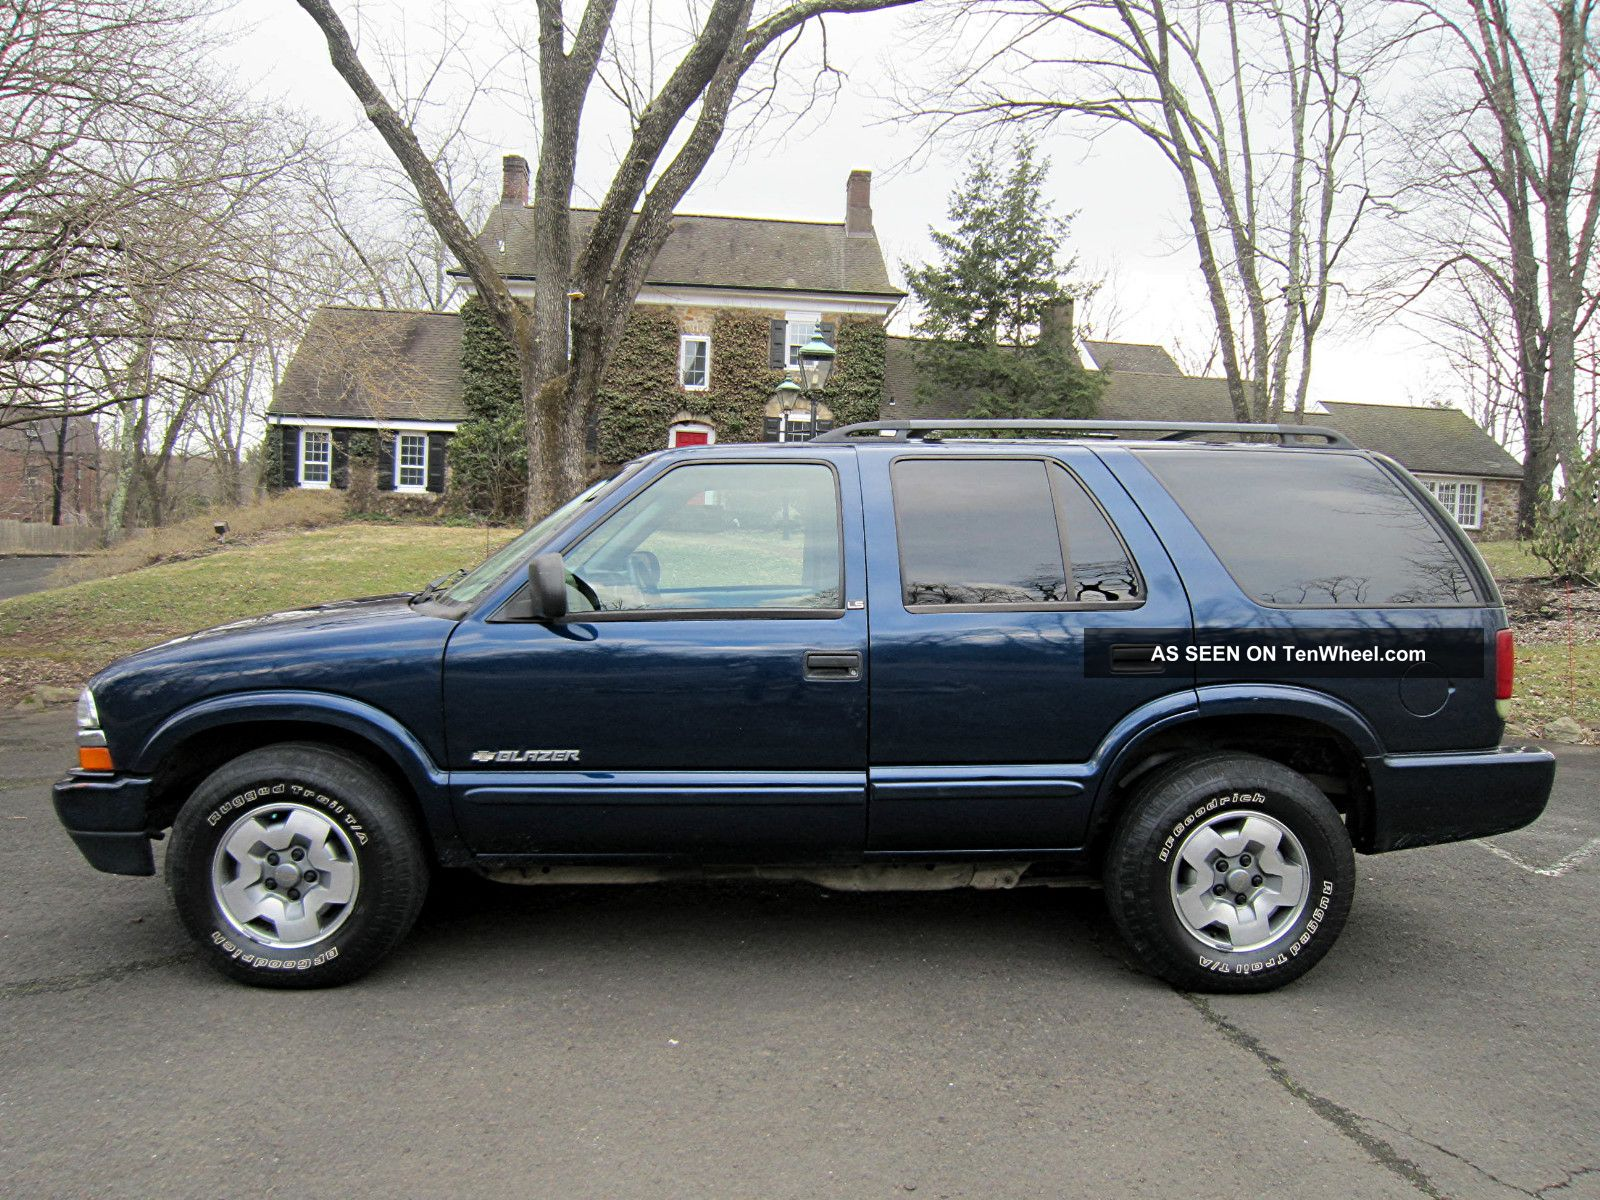 2002 chevrolet blazer lt with 4x4 and blazer photo. Cars Review. Best American Auto & Cars Review